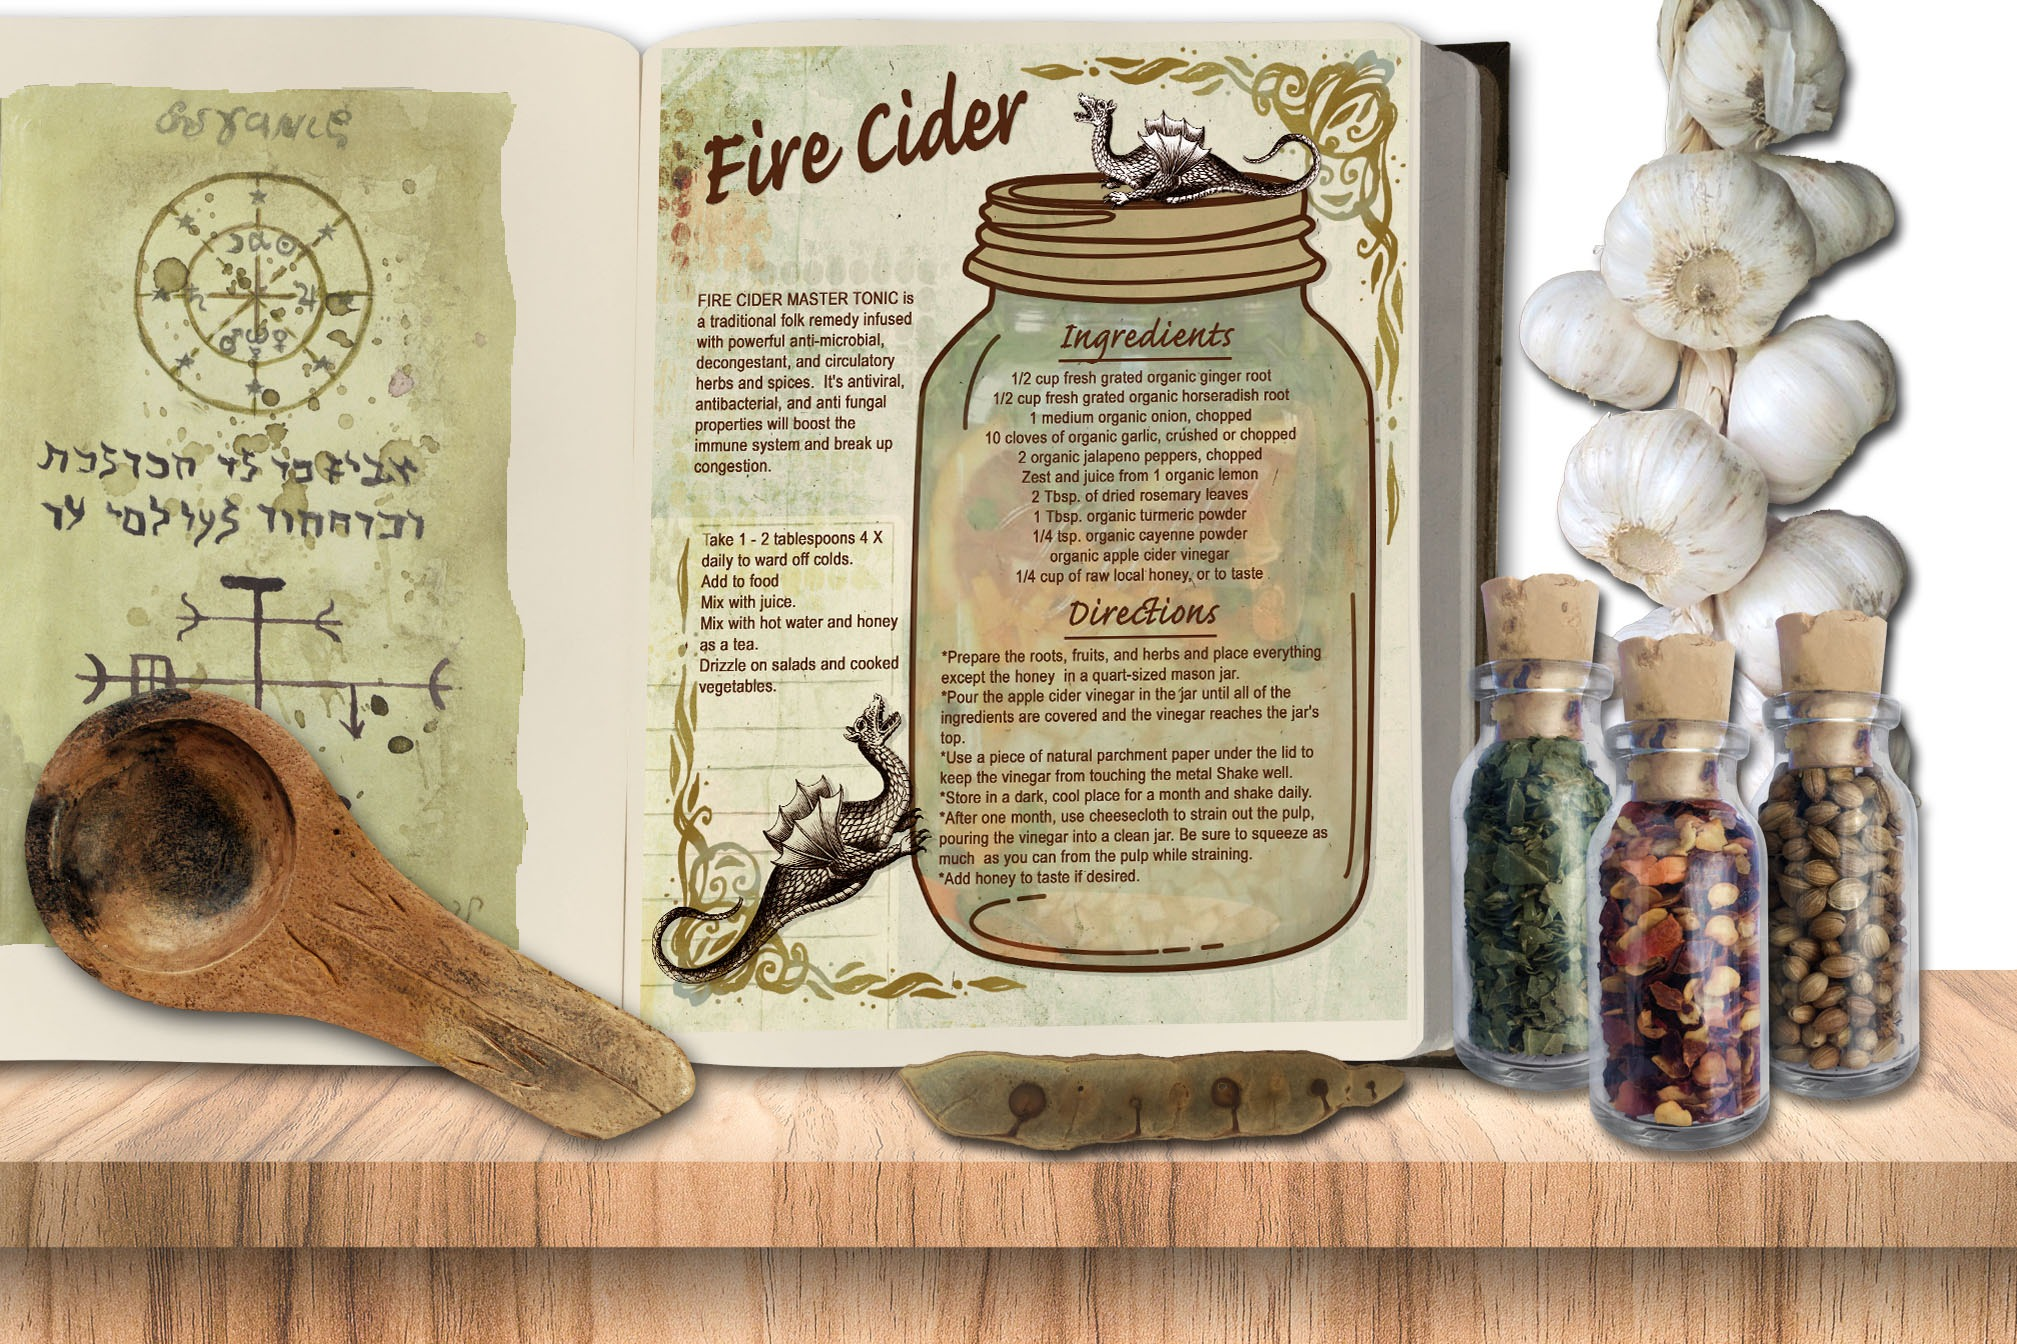 FIRE CIDER RECIPE